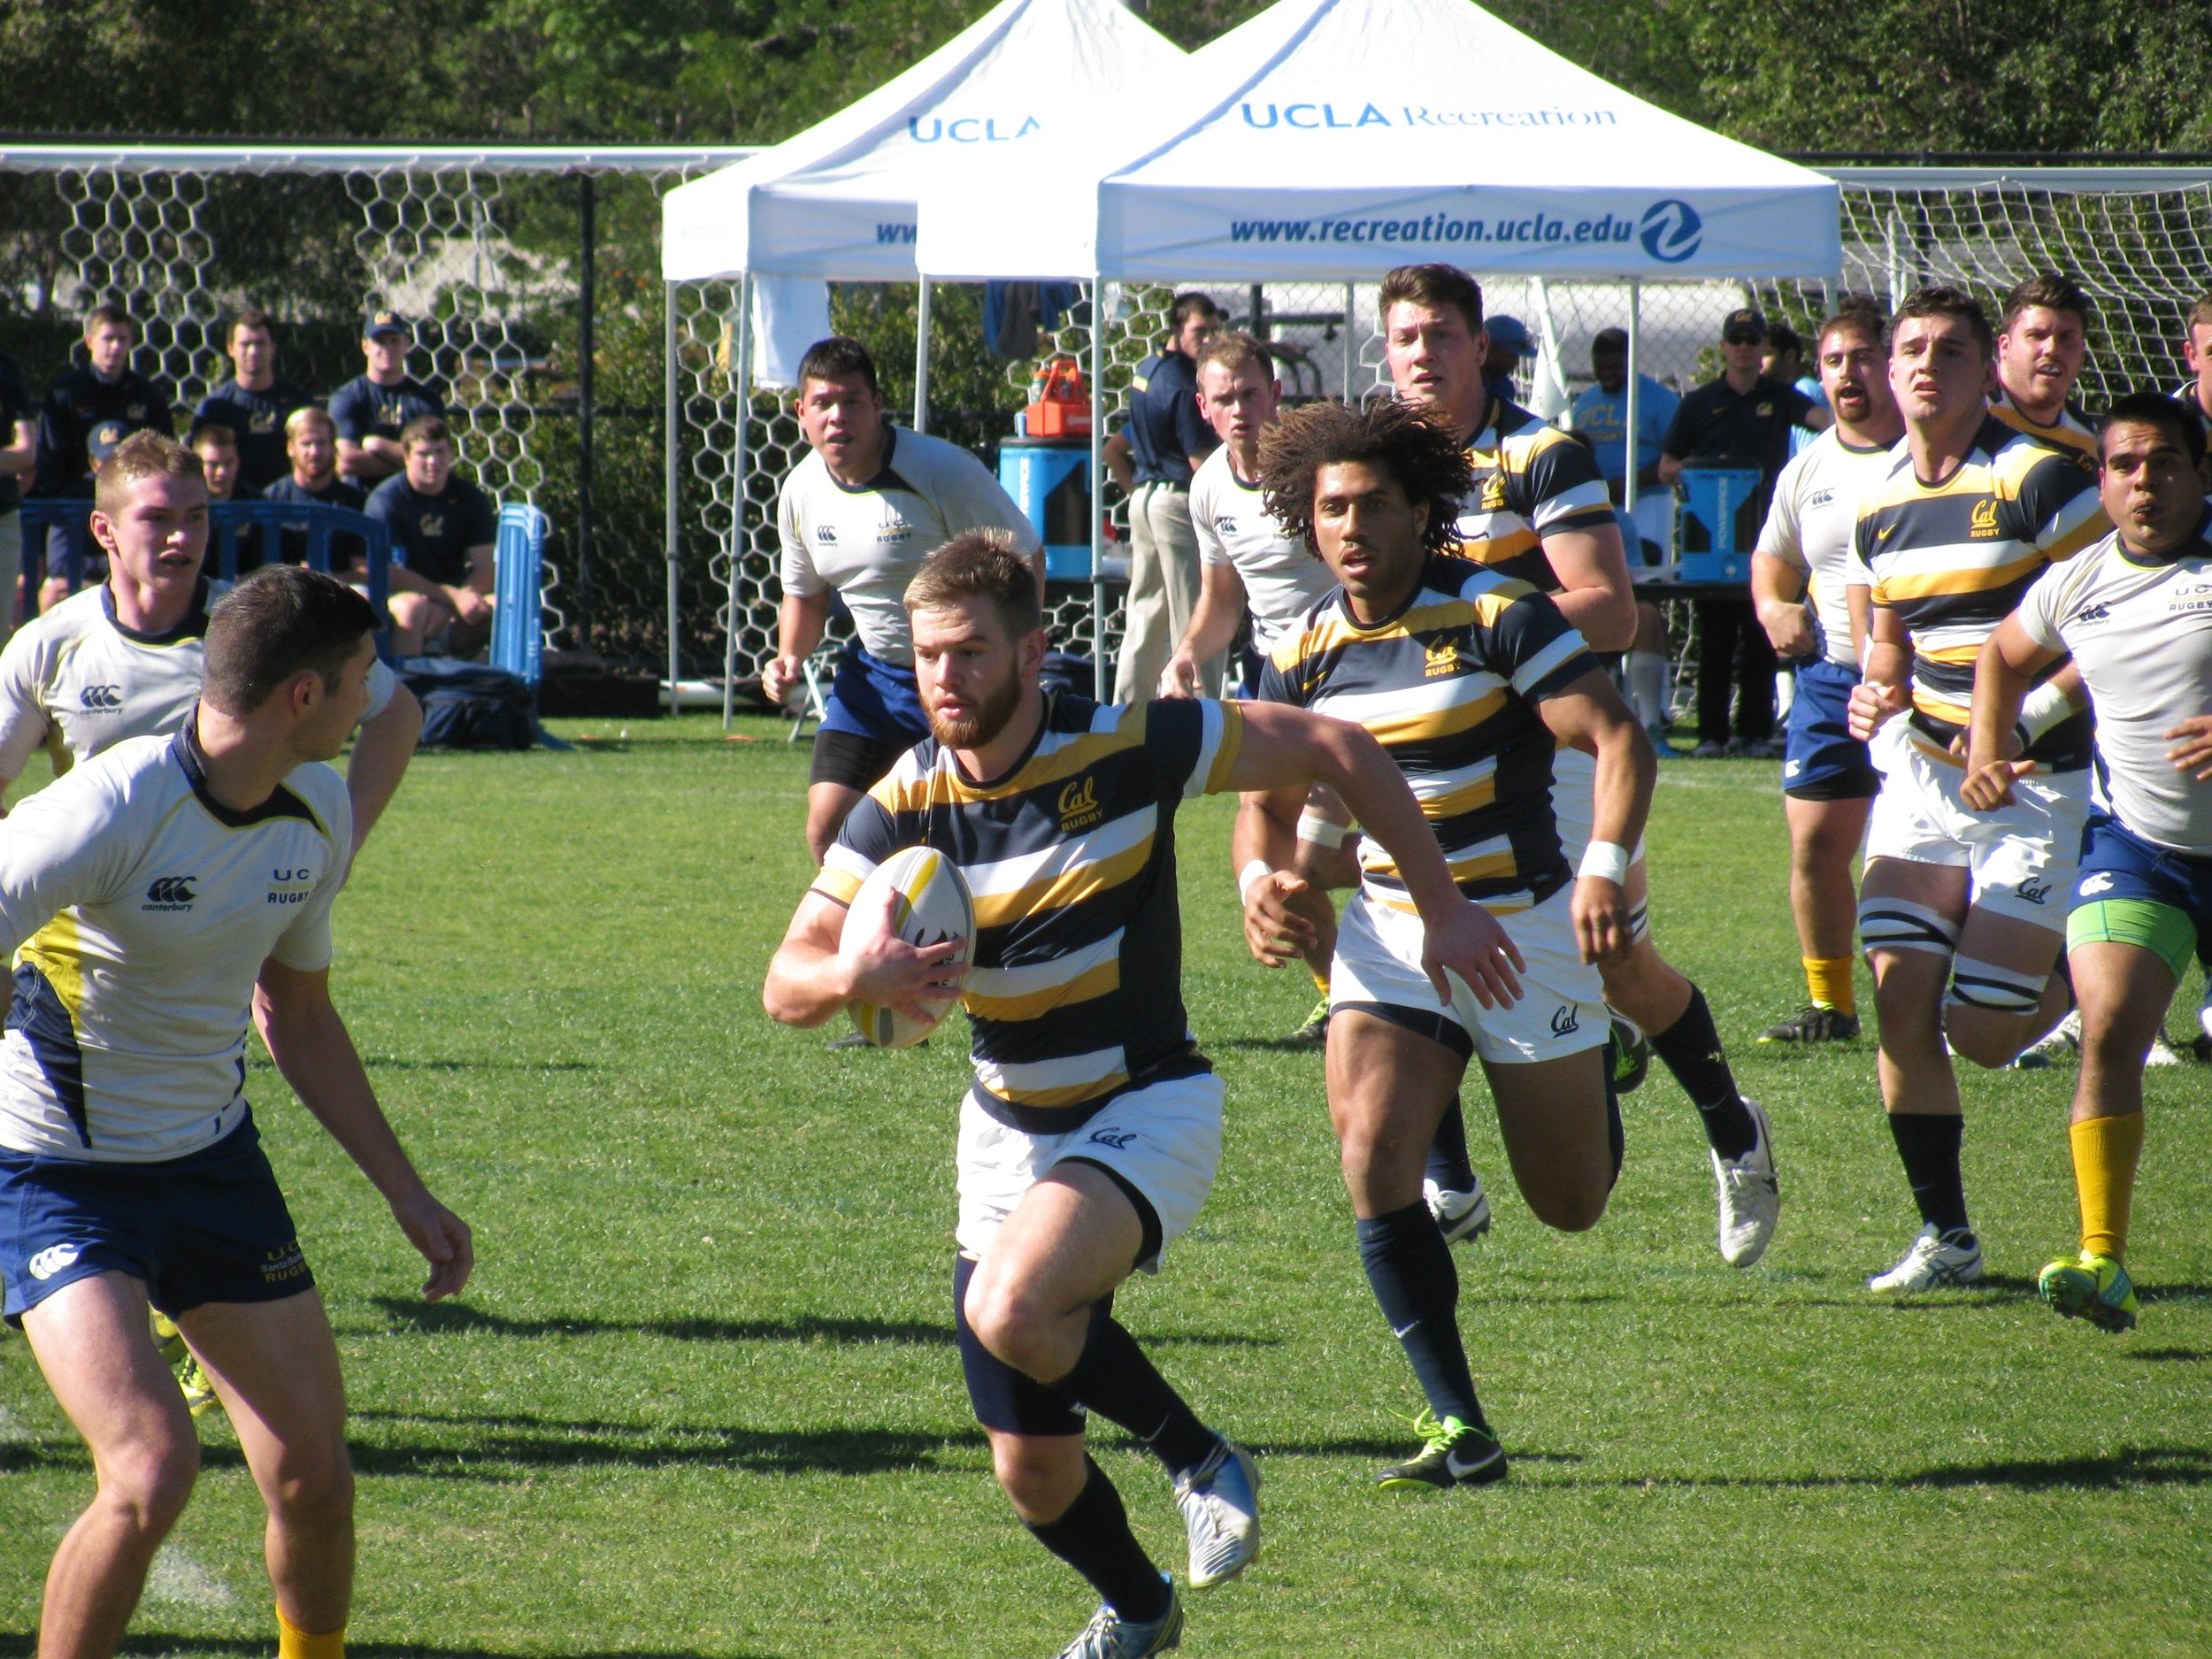 Cal Rugby, 28 time national champions